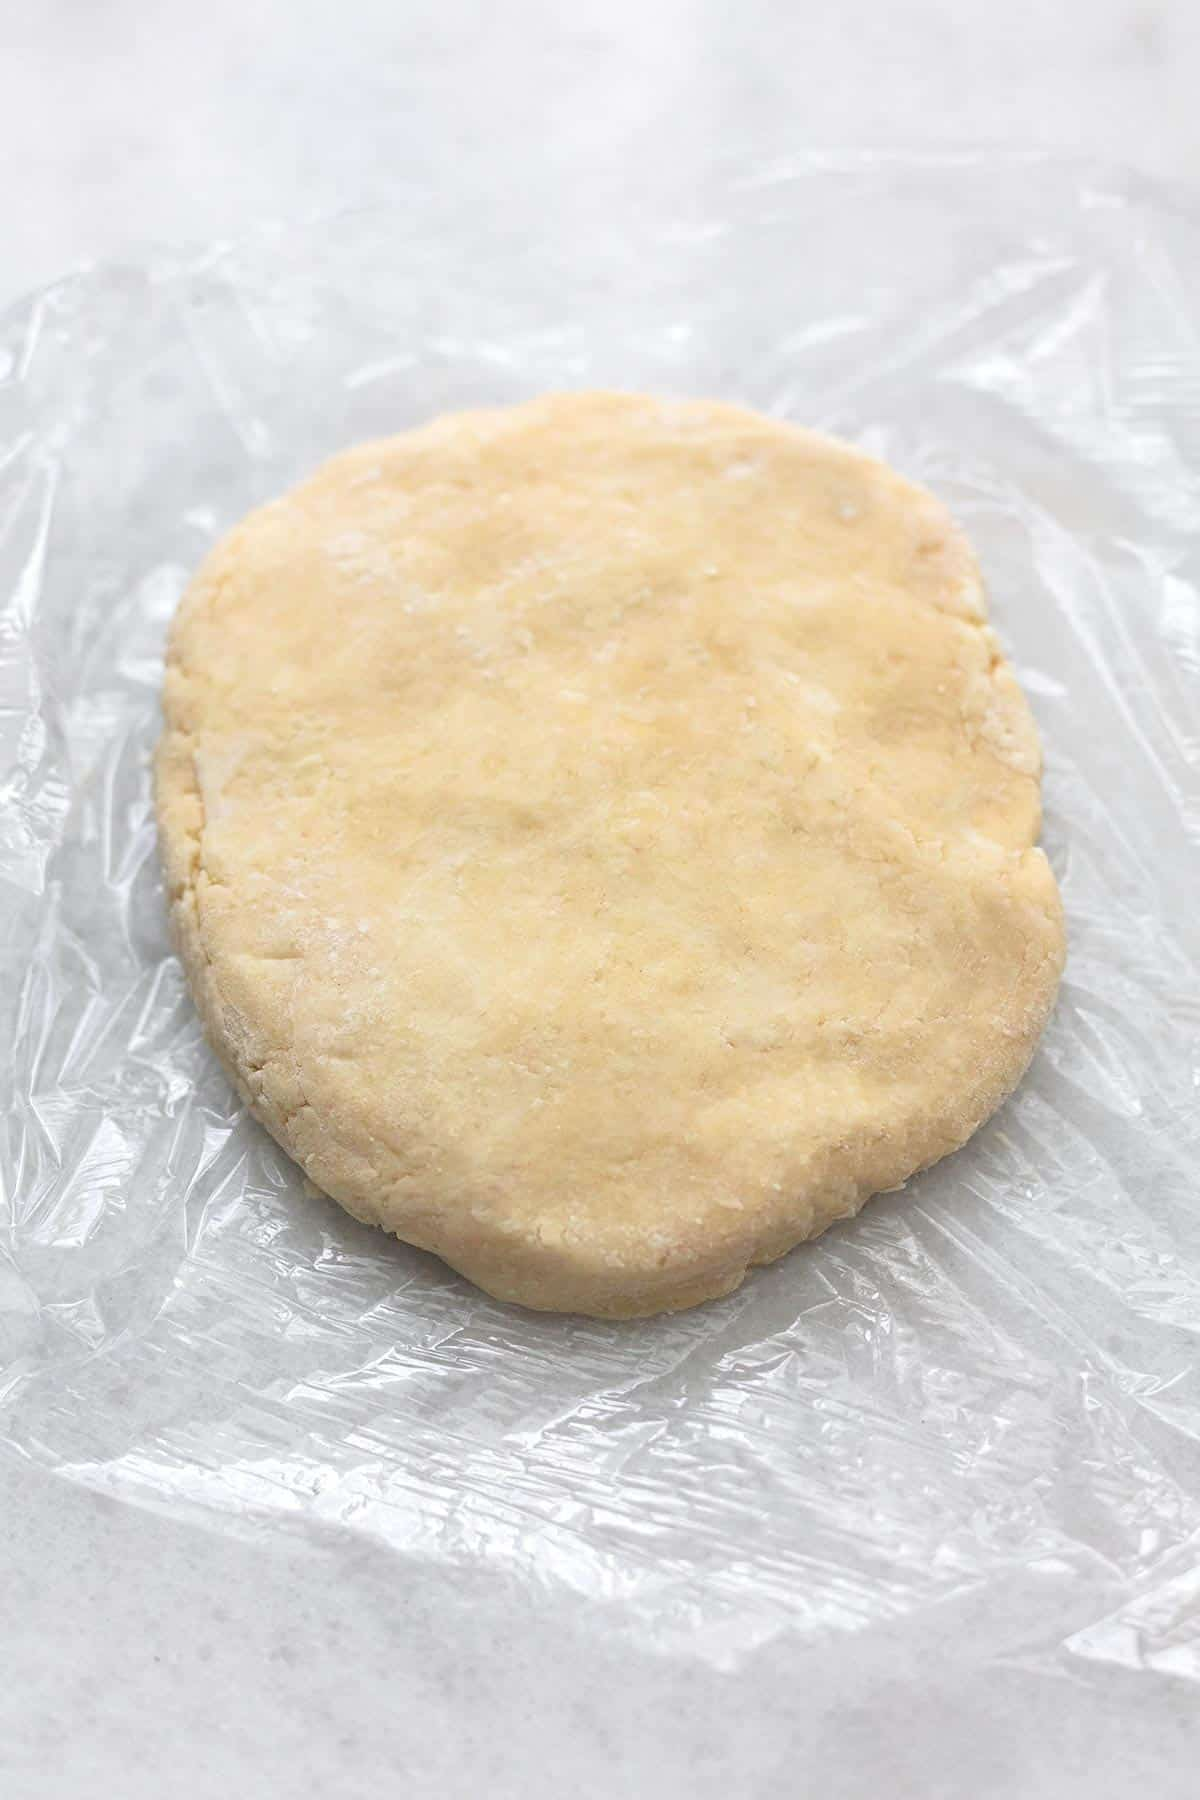 pie crust dough patted into a disc on plastic wrap